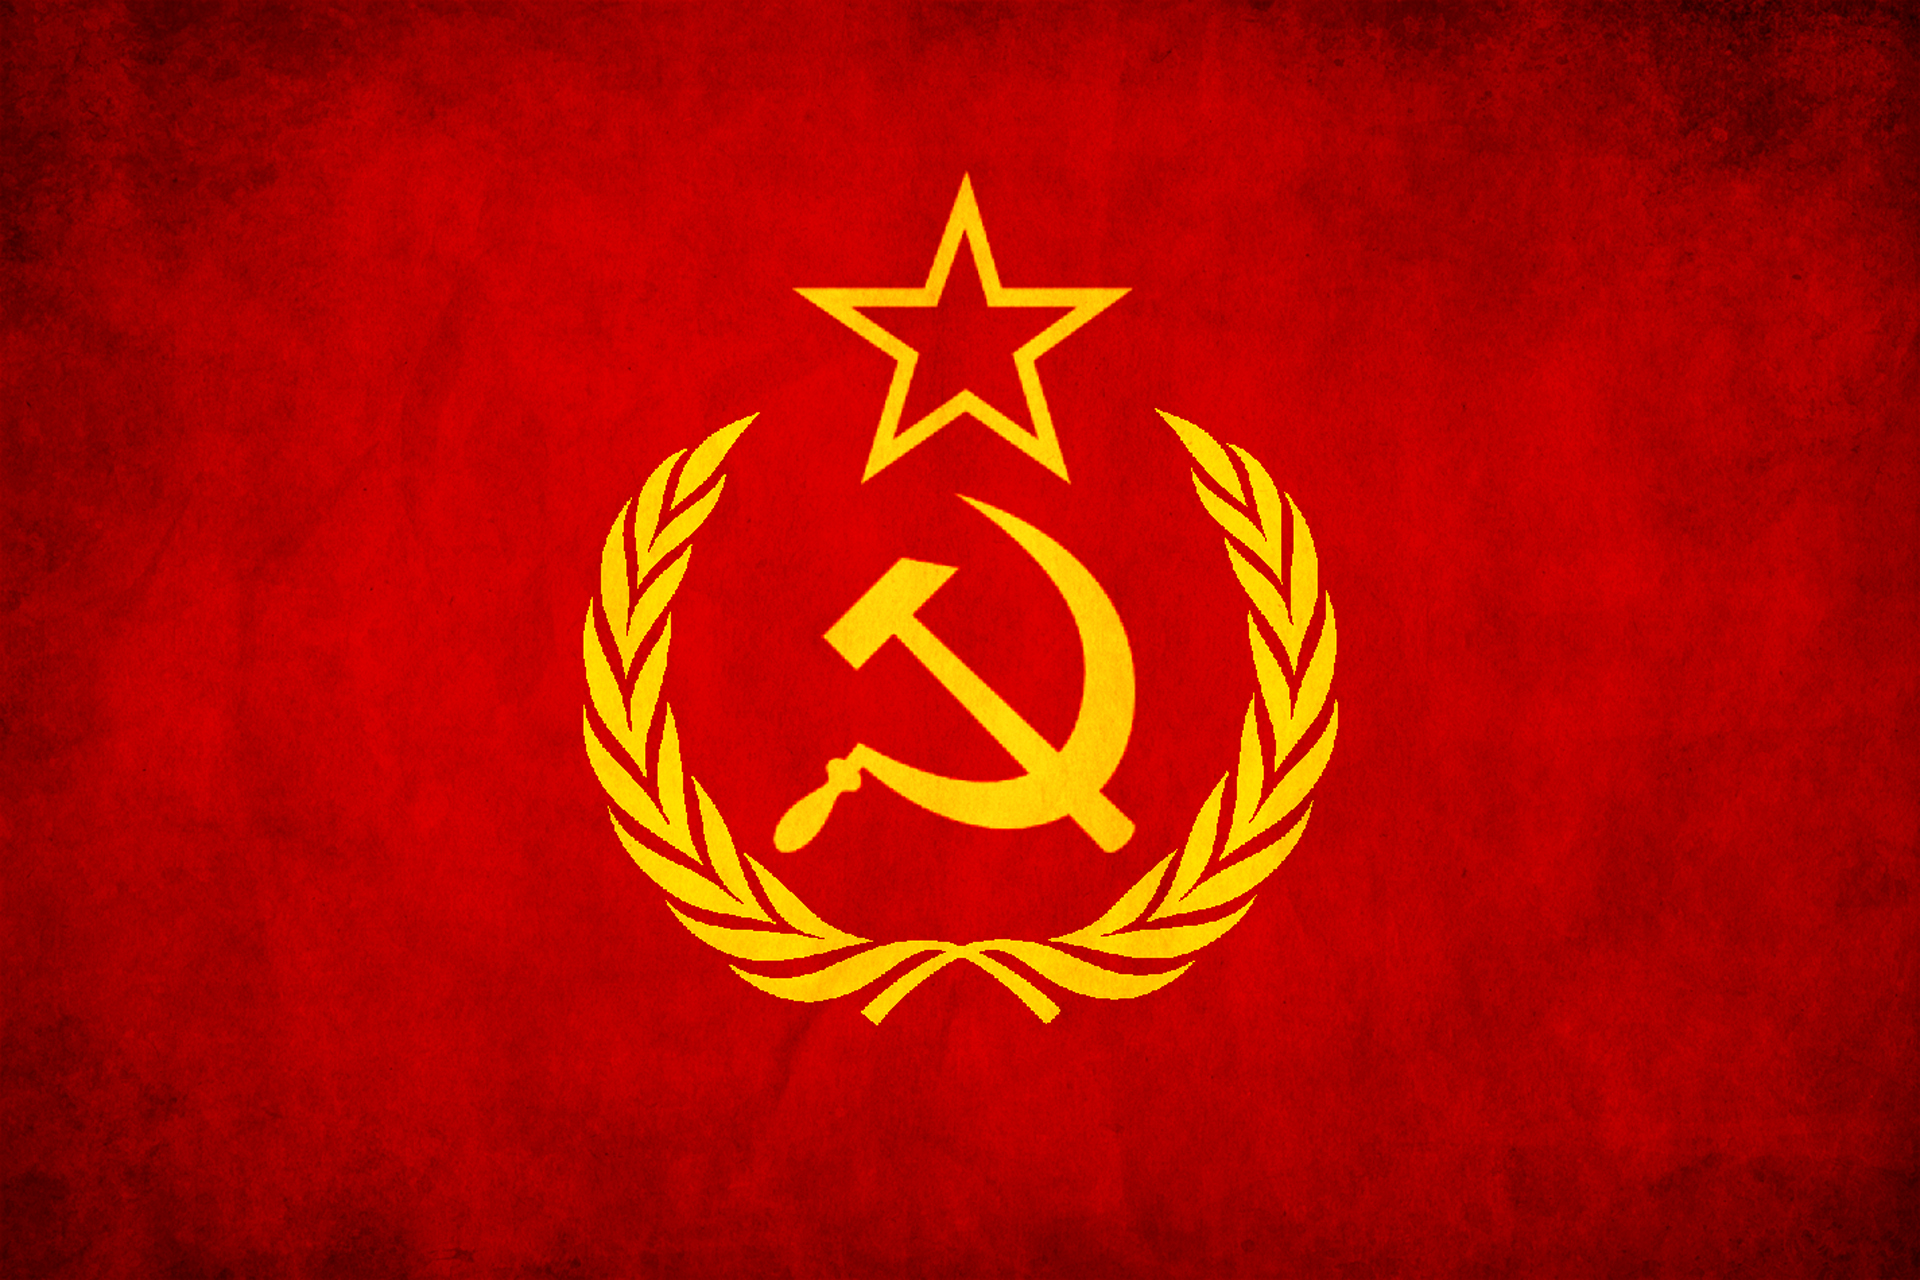 http://media.moddb.com/images/articles/1/93/92994/auto/Soviet_Union_USSR_Grunge_Flag_by_think0.jpg